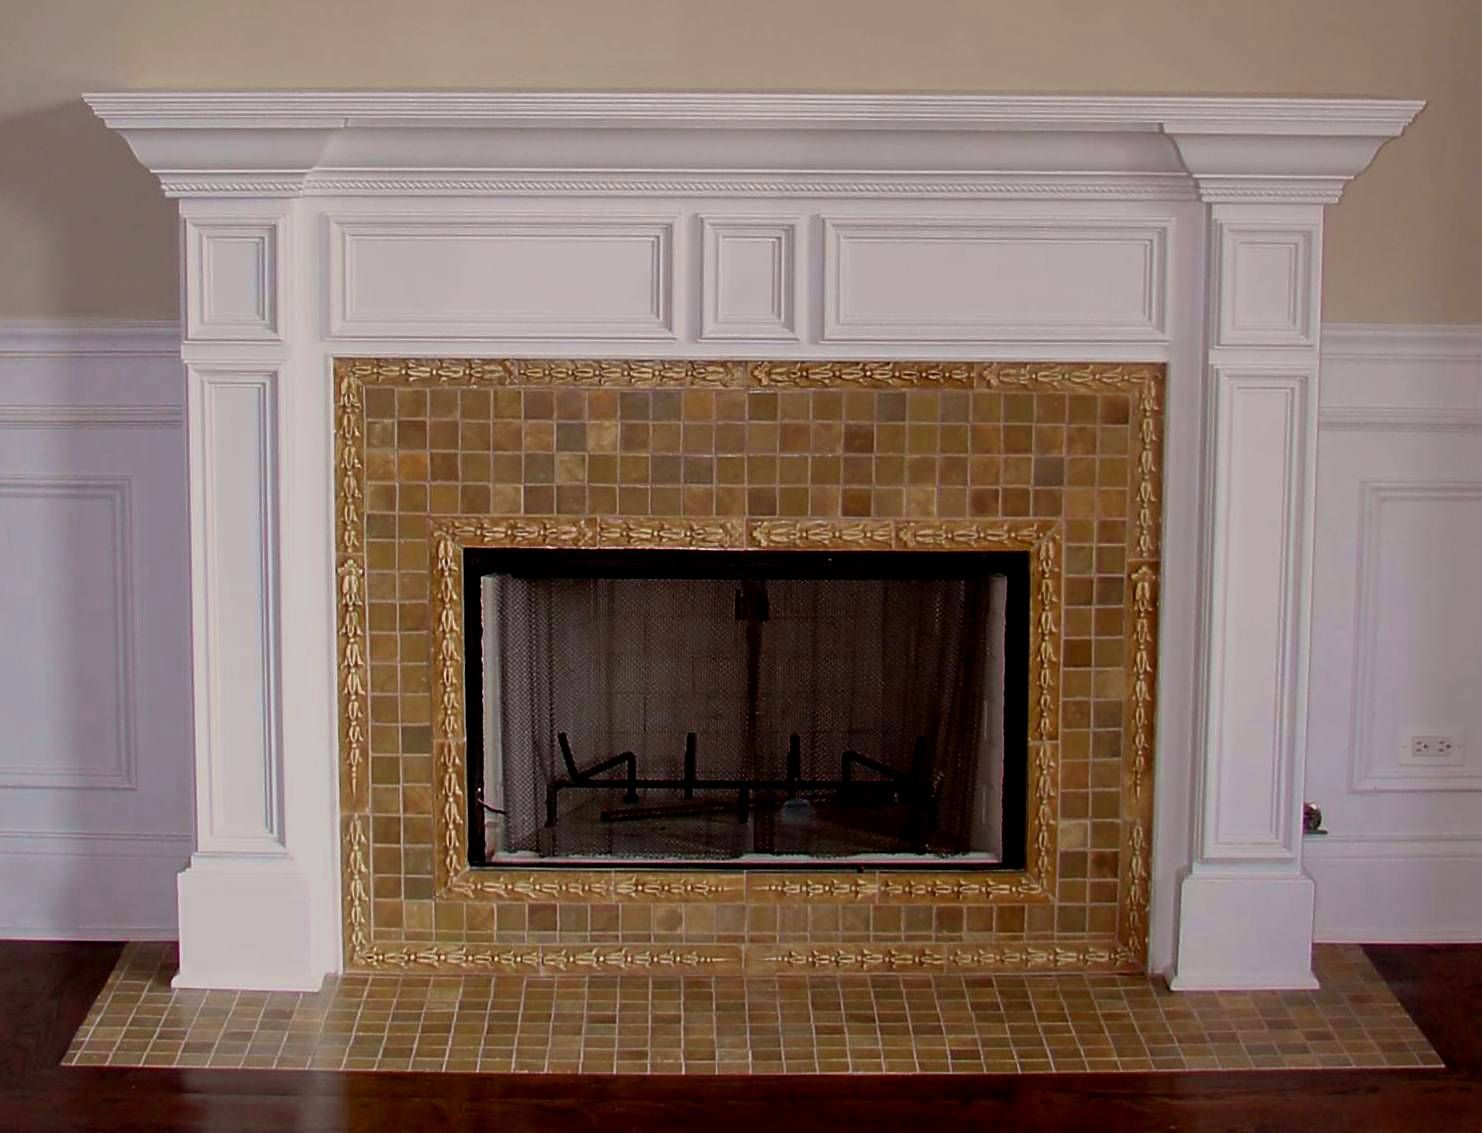 25 most popular fireplace tiles ideas this year you need to know winsome decorating ideas surprising indoor fireplace decoration with brown tile ceramic fireplace design wood floor and white fireplace edge dailygadgetfo Images